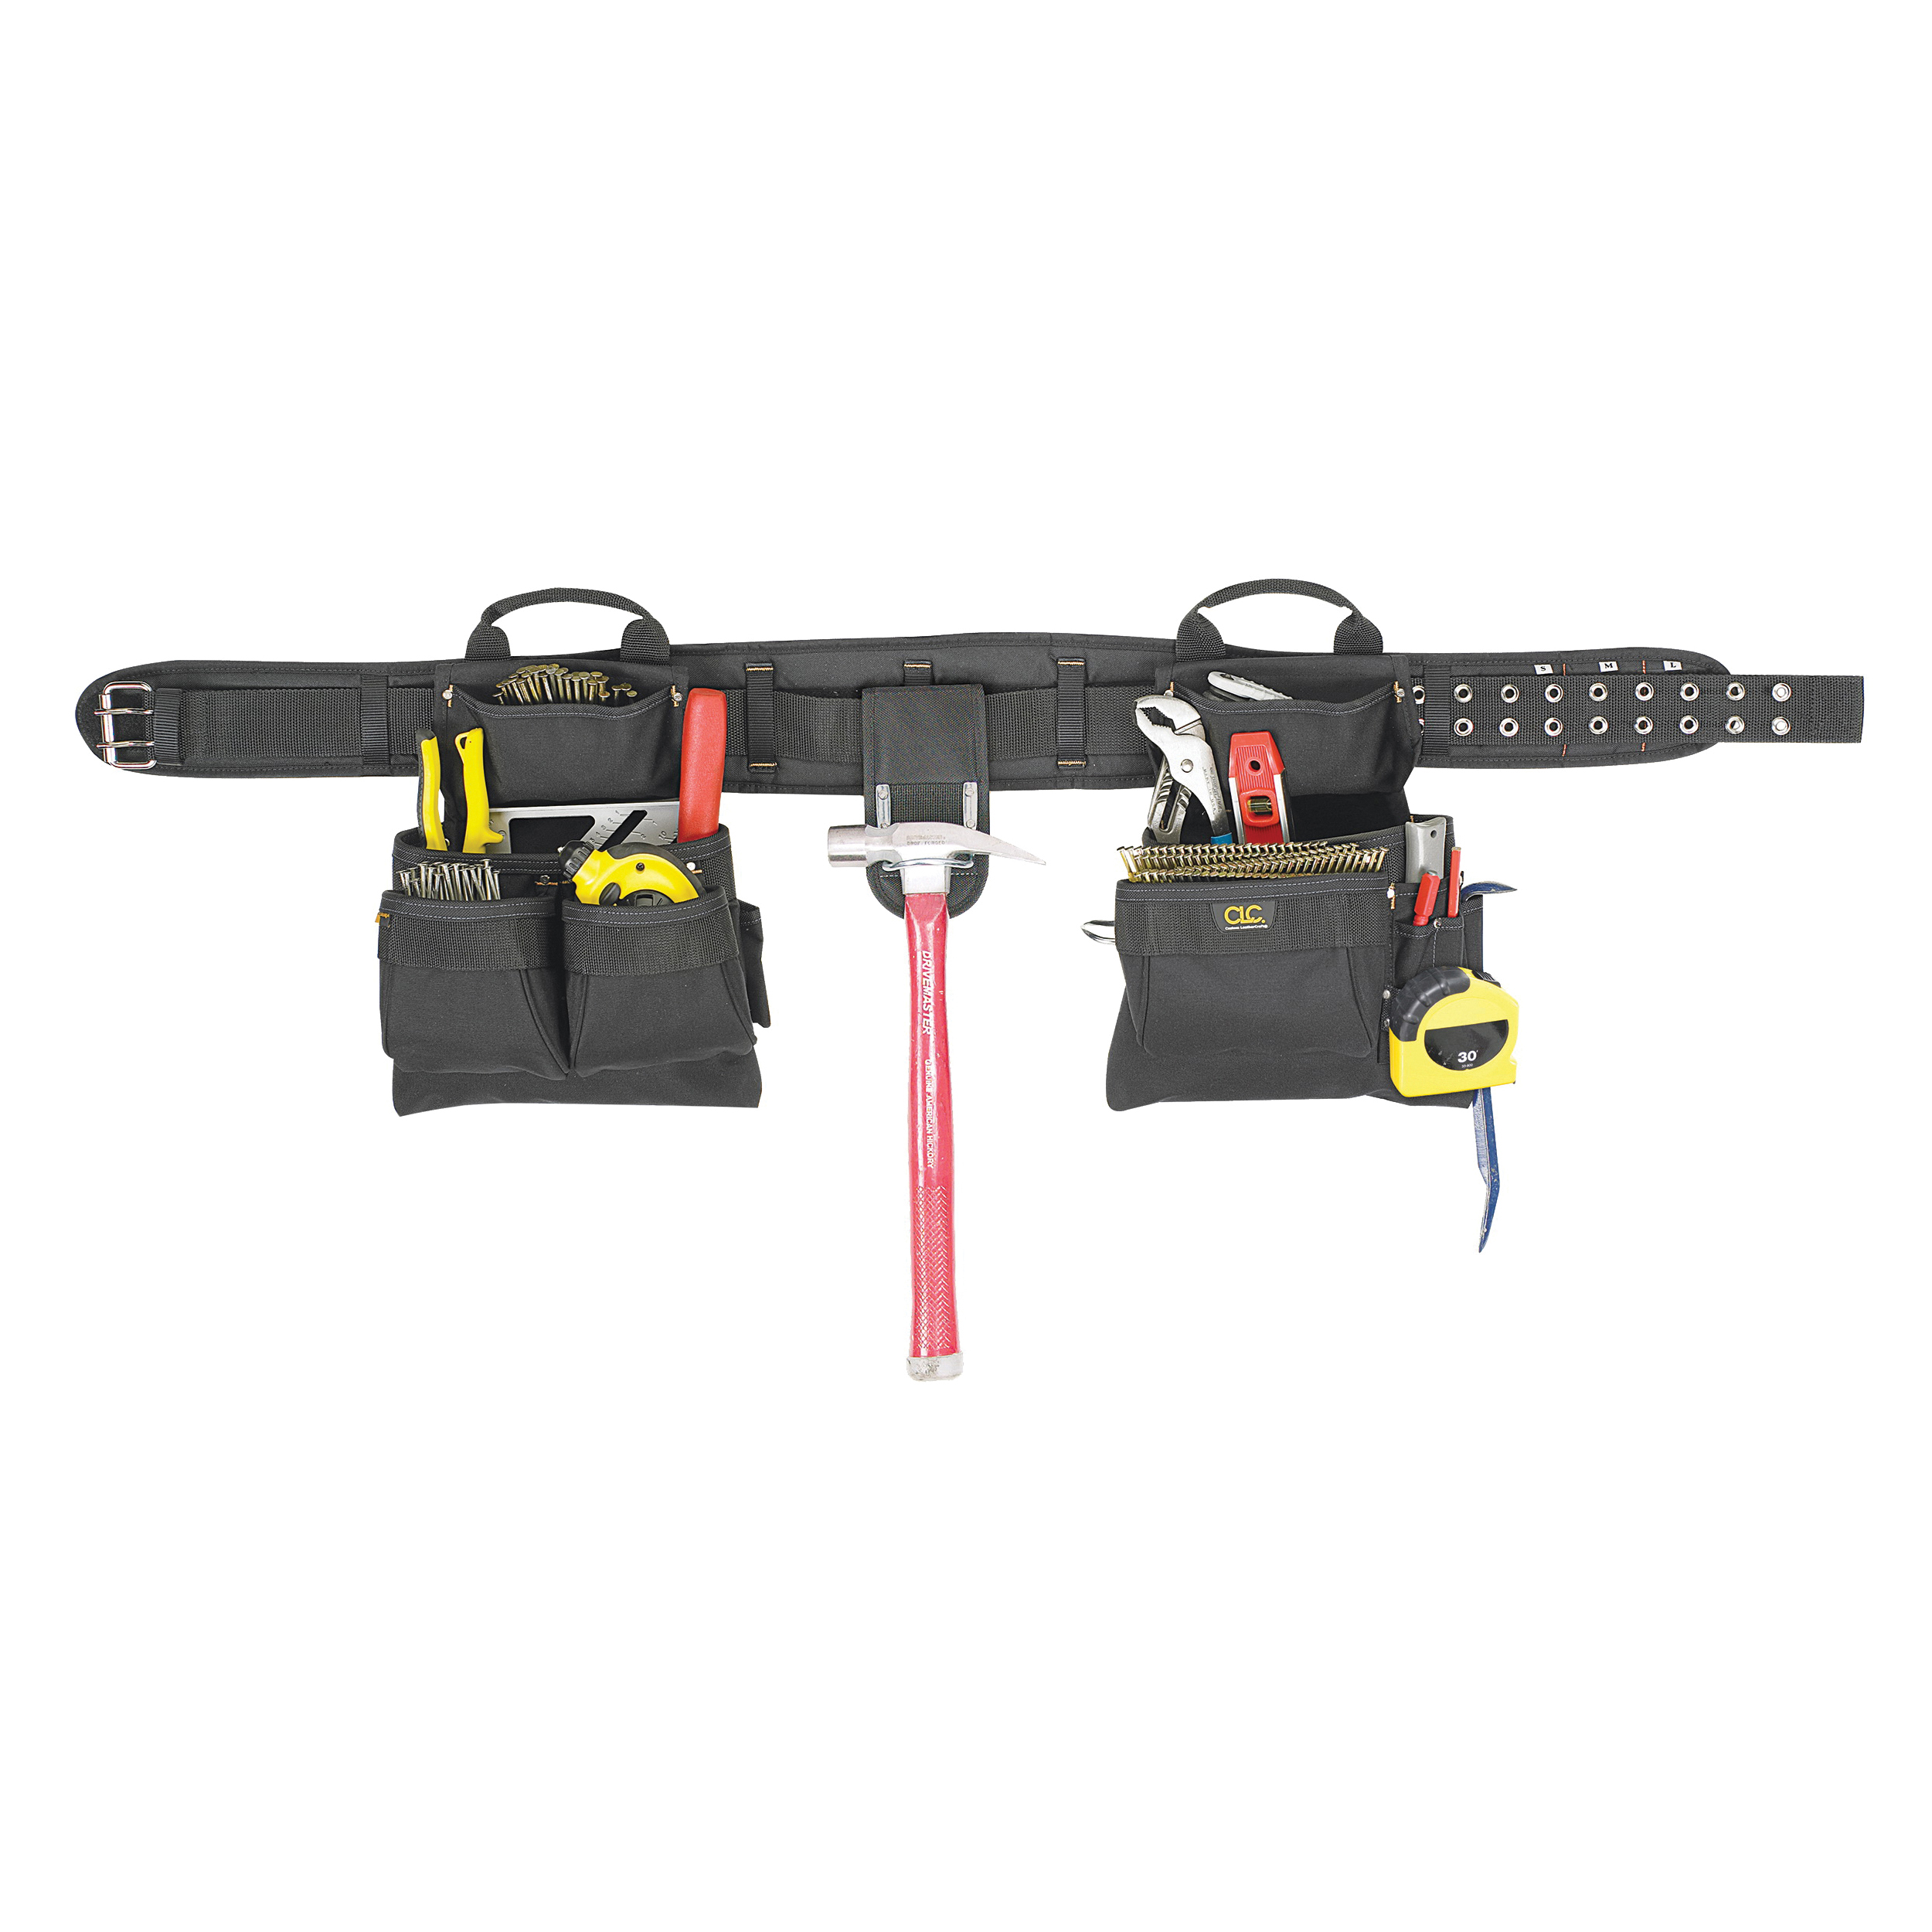 Picture of CLC Tool Works 5608 Tool Belt, 29 to 46 in Waist, Polyester, Black, 17 -Pocket